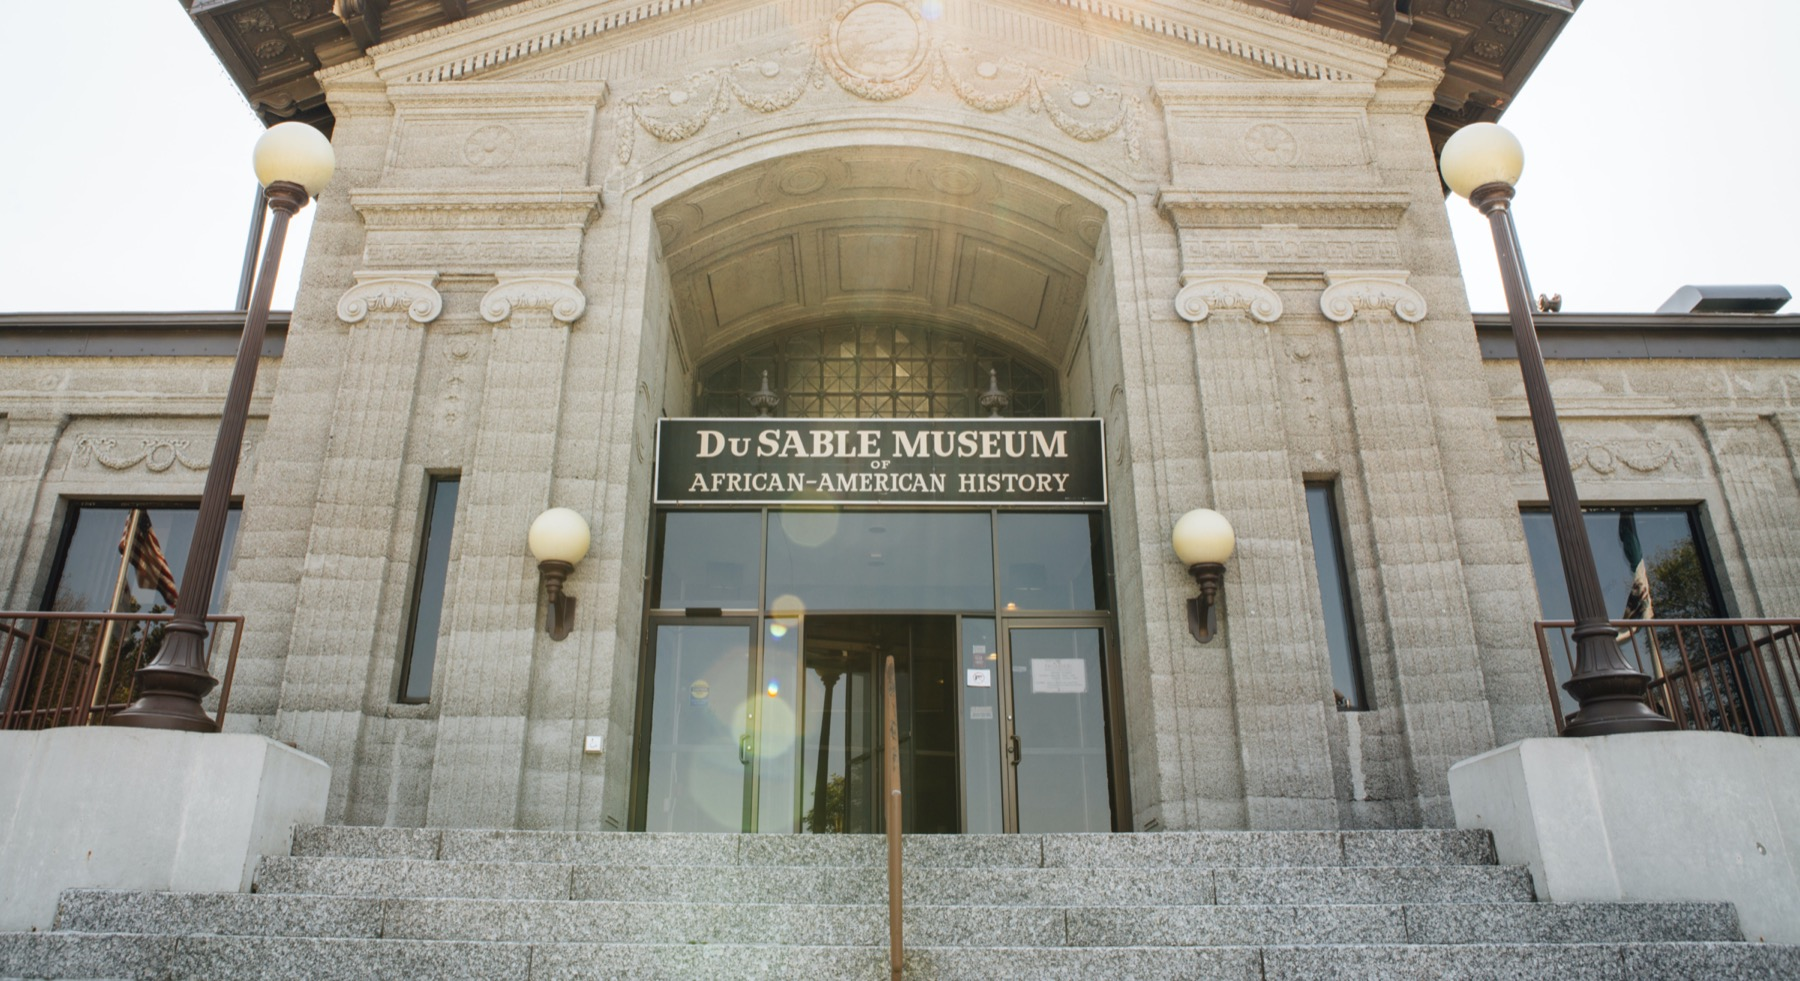 10 cultural heritage museums to explore in Chicago